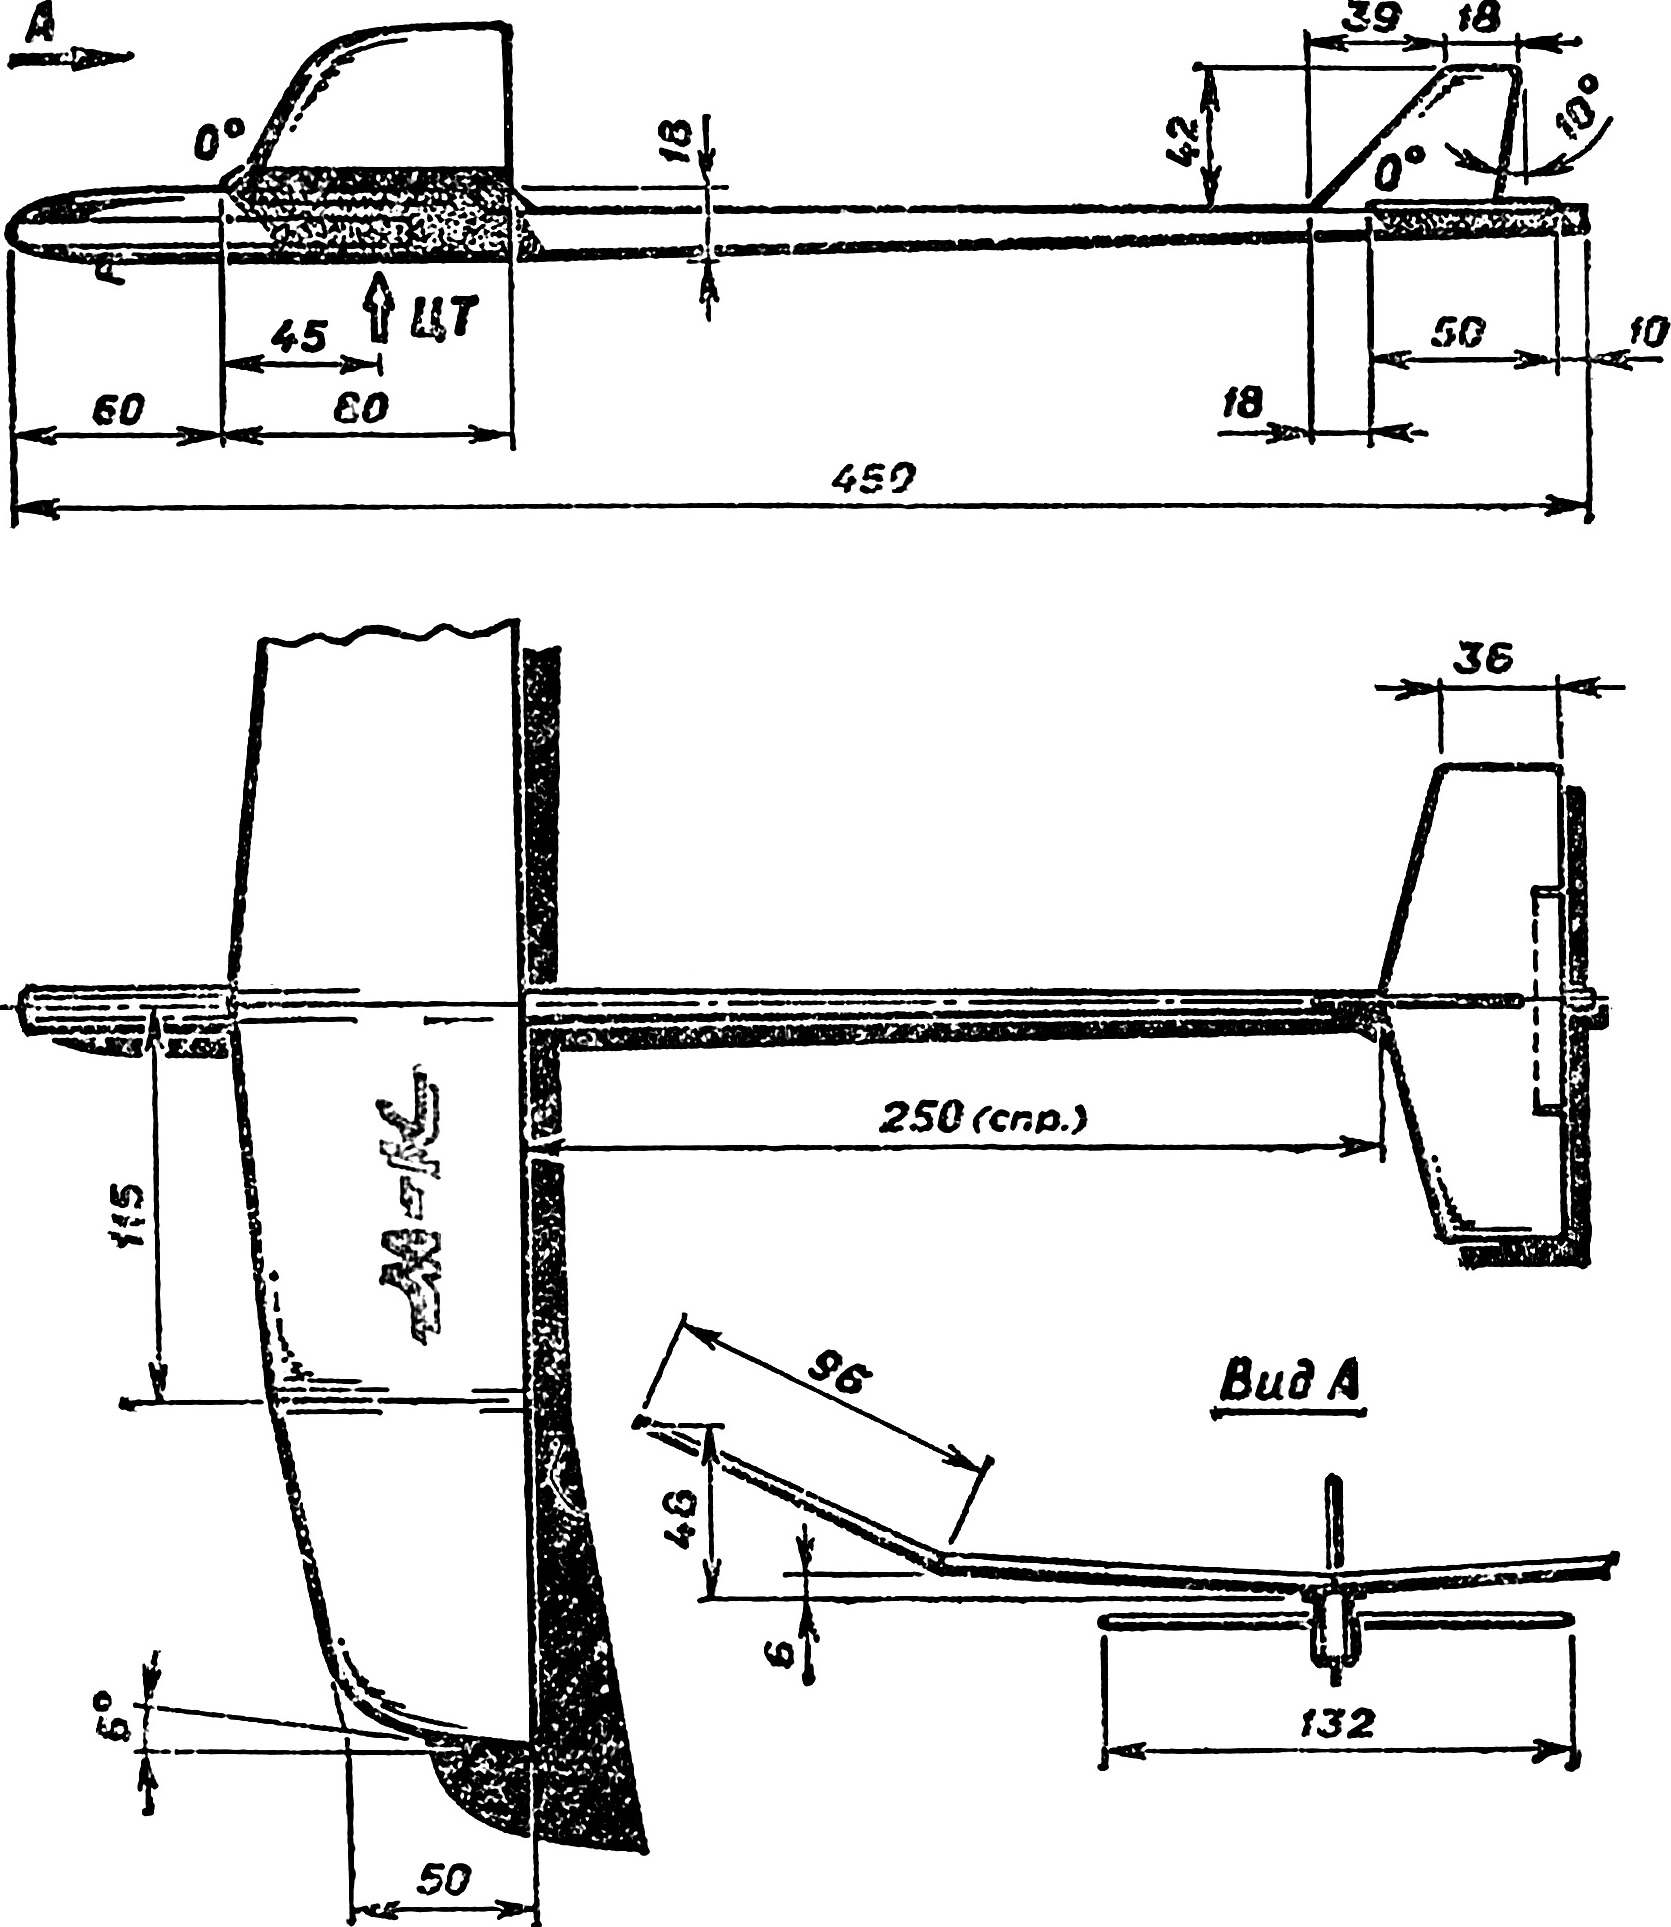 Throwing (inertia) model of the airframe.